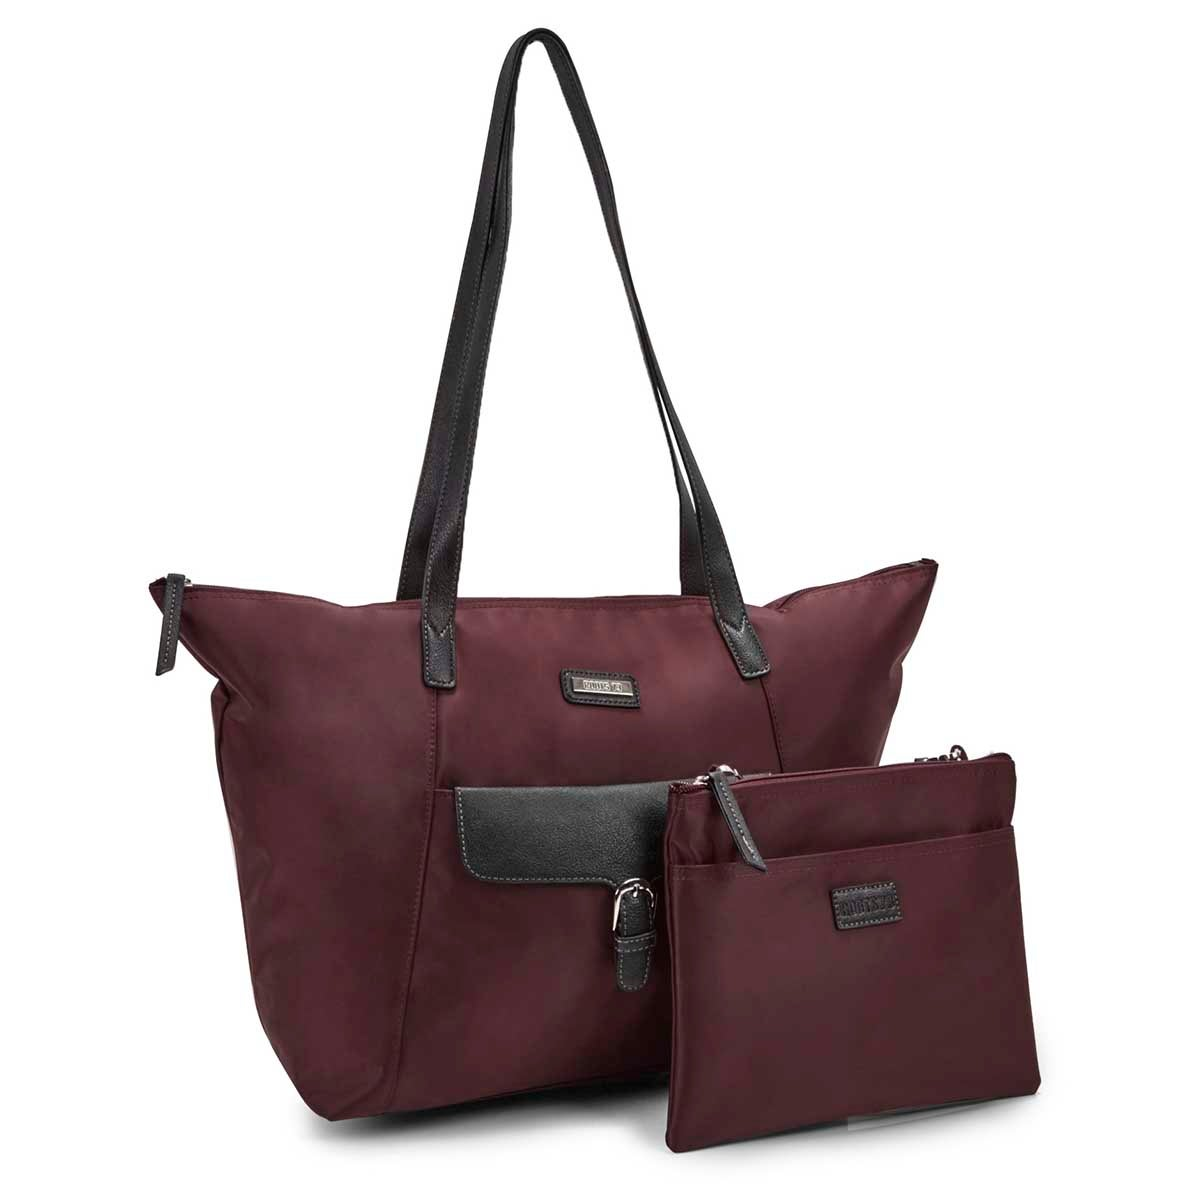 Lds Roots73 burg 2 in 1 tote bag